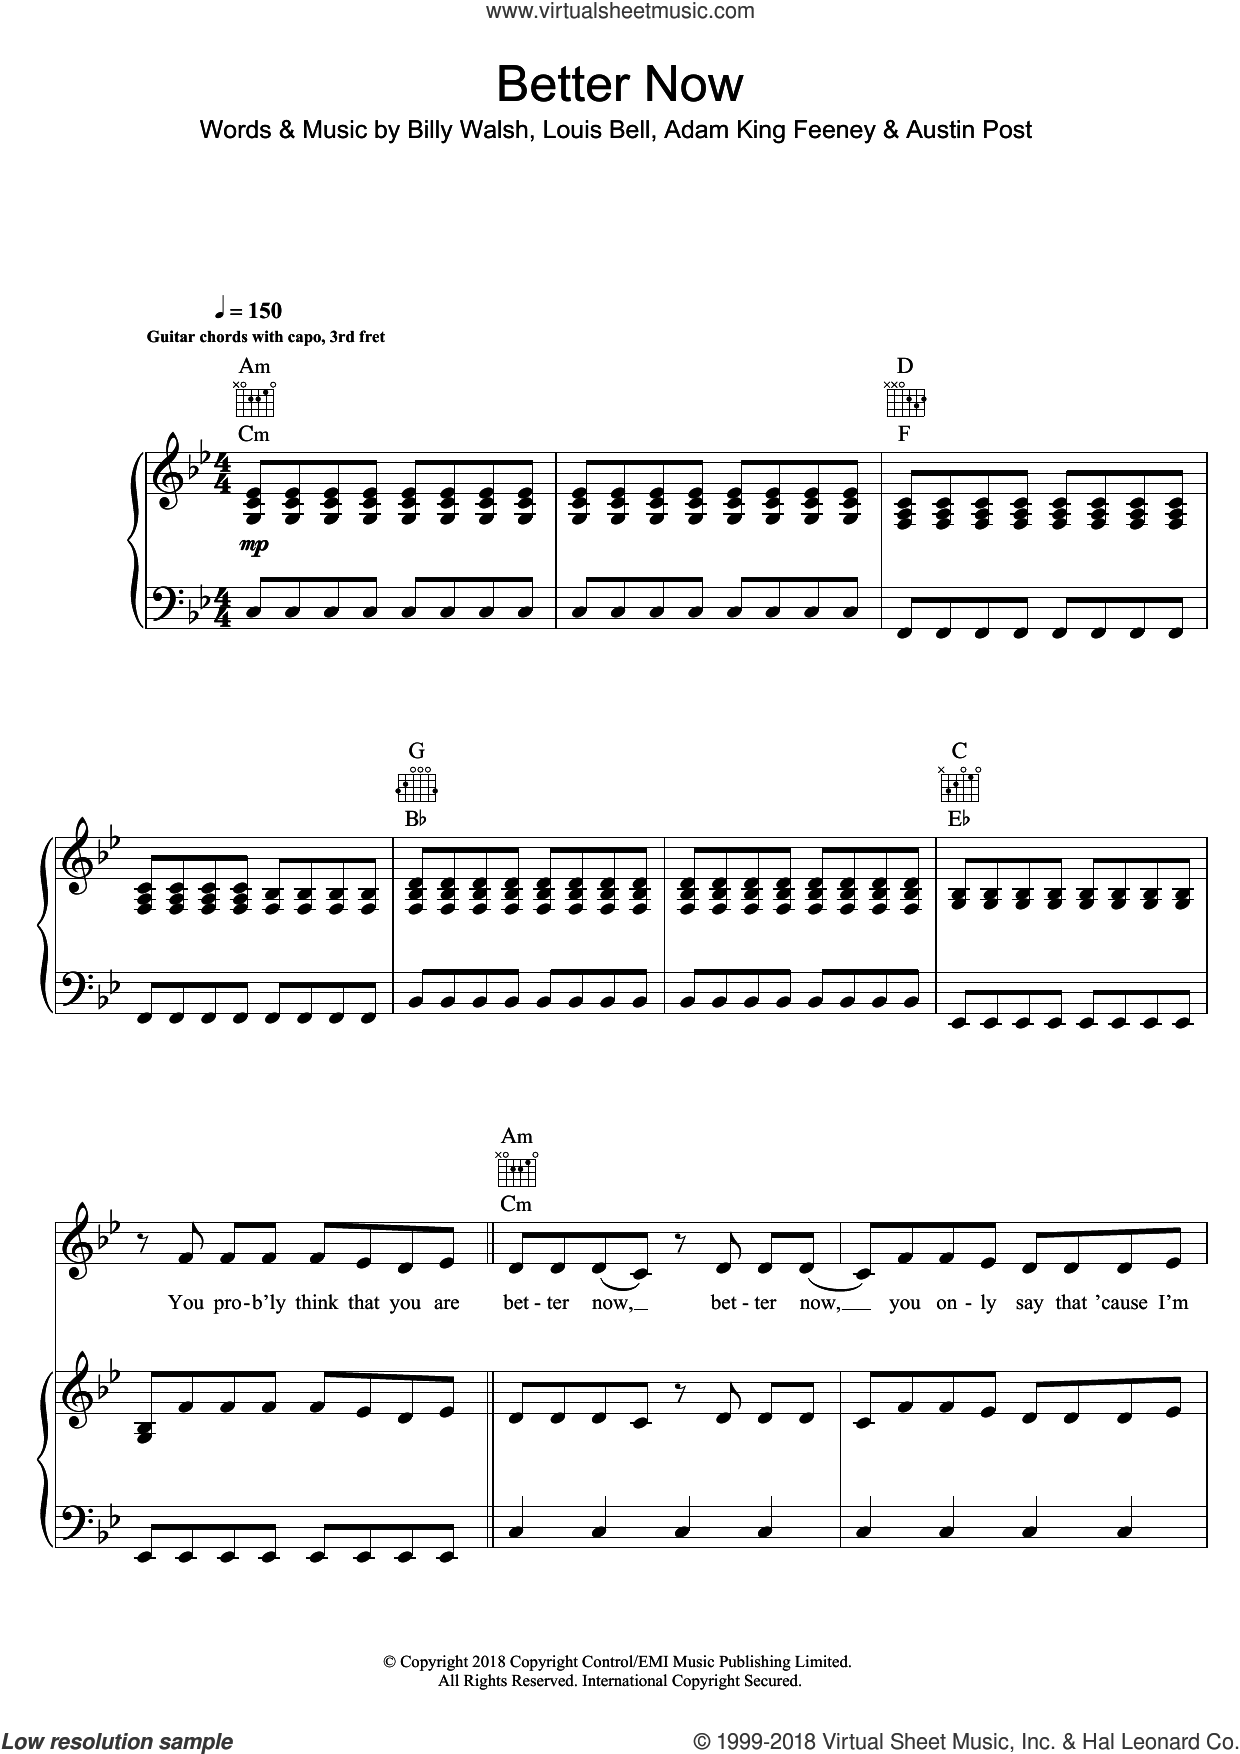 Better Now sheet music for voice, piano or guitar by Post Malone, Adam King Feeney, Austin Post, Billy Walsh and Louis Bell, intermediate skill level